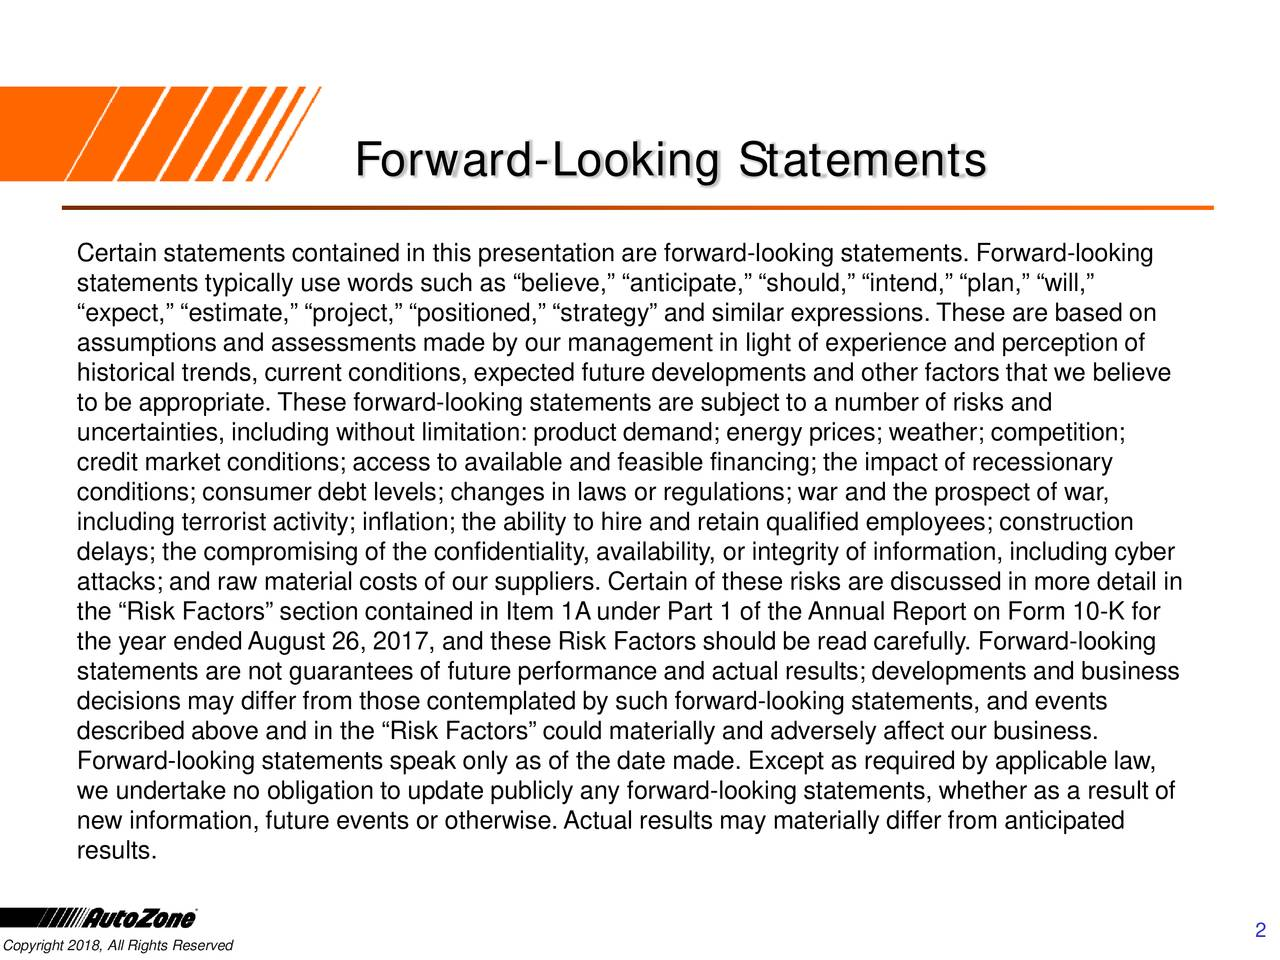 """Certain statements contained in this presentation are forward -looking statements. Forward-looking statements typically use words such as """"believe,"""" """"anticipate,"""" """"should,"""" """"intend,"""" """"plan,"""" """"will,"""" """"expect,"""" """"estimate,"""" """"project,"""" """"positioned,"""" """"strategy"""" and similar expressions. These are based on assumptions and assessments made by our management in light of experience and perception of historical trends, current conditions, expected future developments and other factors that we believe to be appropriate. These forward-looking statements are subject to a number of risks and uncertainties, including without limitation: product demand; energy prices; weather; competition; credit market conditions; access to available and feasible financing; the impact of recessionary conditions; consumer debt levels; changes in laws or regulations; war and the prospect of war, including terrorist activity; inflation; the ability to hire and retain qualified employees; construction delays; the compromising of the confidentiality, availability, or integrity of information, including cyber attacks; and raw material costs of our suppliers. Certain of these risks are discussed in more detail in the """"Risk Factors"""" section contained in Item 1A under Part 1 of the Annual Report on Form 10 -K for the year ended August 26, 2017, and these Risk Factors should be read carefully. Forward -looking statements are not guarantees of future performance and actual results; developments and business decisions may differ from those contemplated by such forward-looking statements, and events described above and in the """"Risk Factors"""" could materially and adversely affect our business. Forward-looking statements speak only as of the date made. Except as required by applicable law, we undertake no obligation to update publicly any forward -looking statements, whether as a result of new information, future events or otherwise. Actual results may materially differ from anticipated results. 2"""